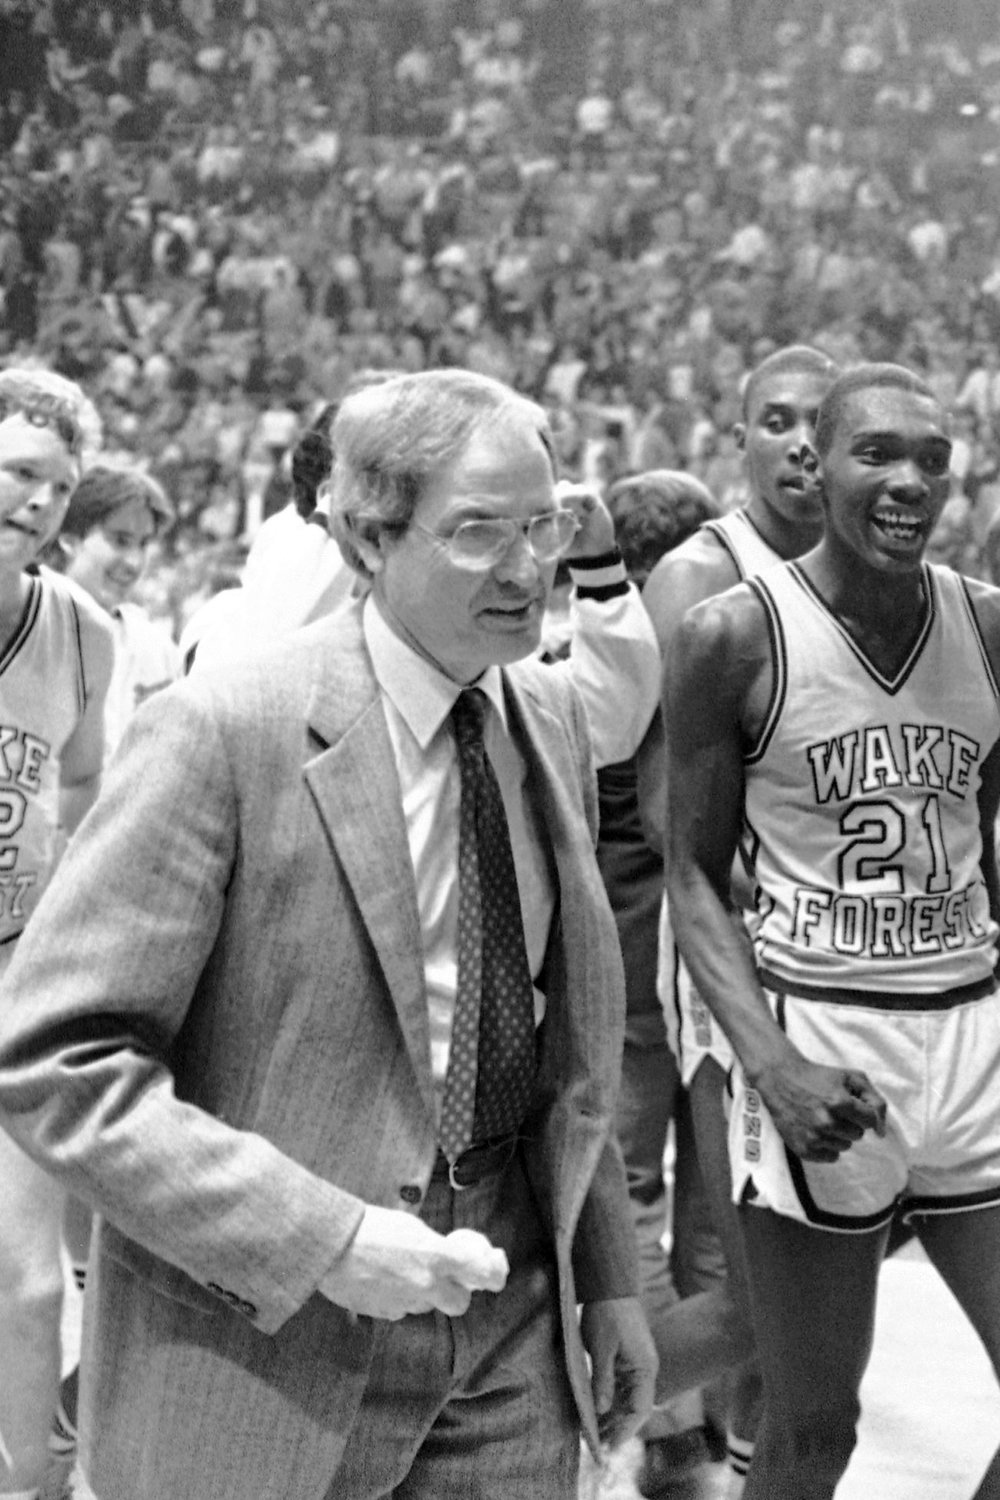 Former Wake Forest coach Tacy dies | Rome Daily Sentinel